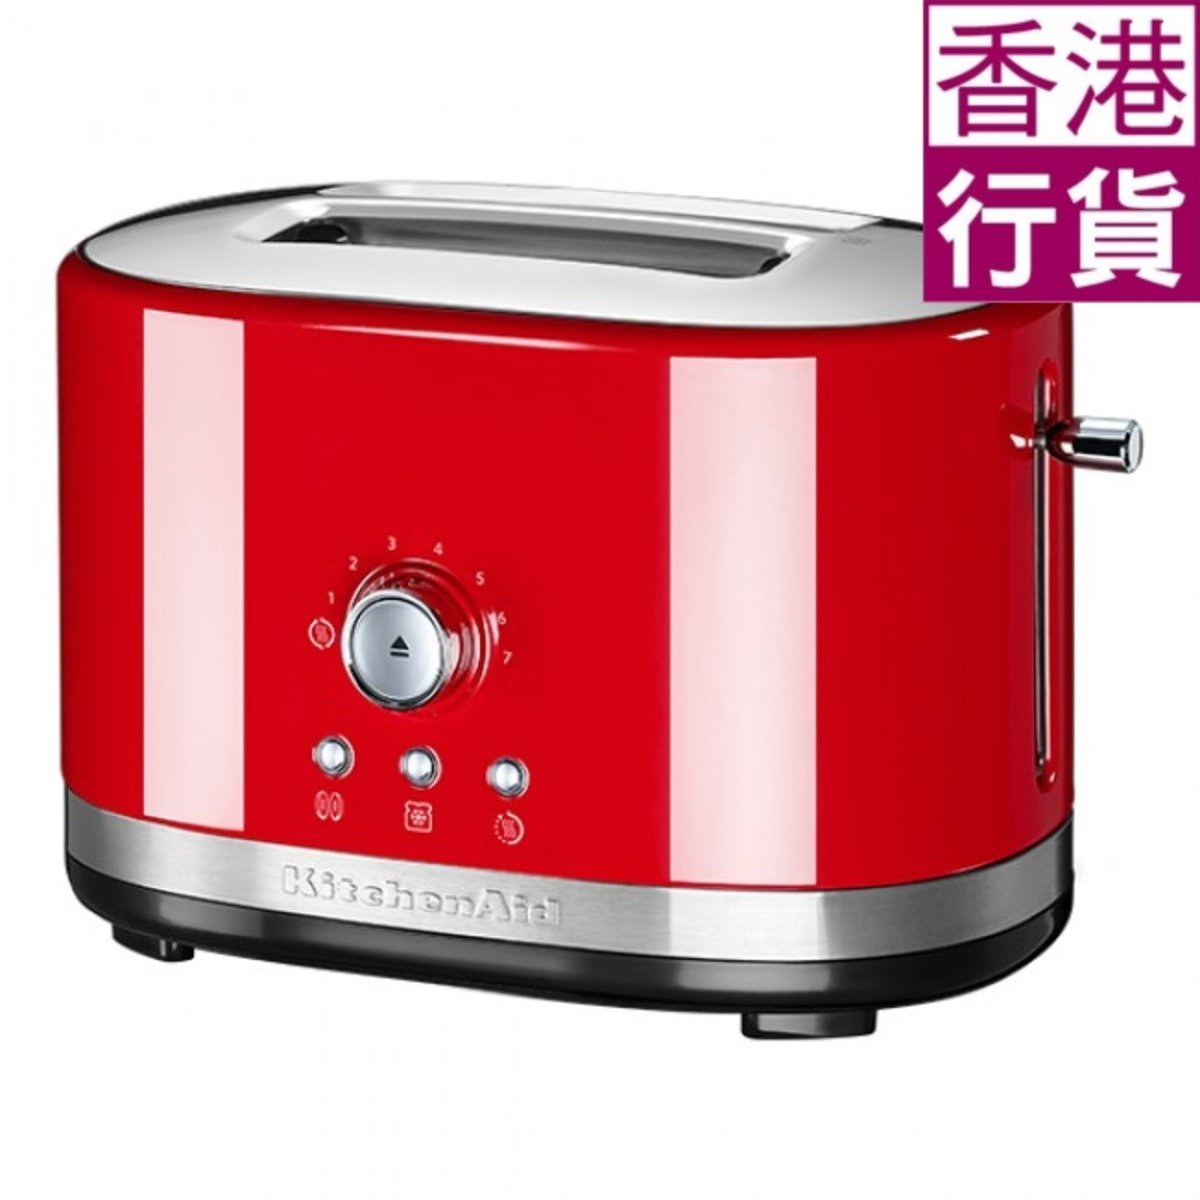 2 Slot Manual Control Toaster (Empire Red) (Official Warranty) 5KMT2116BER